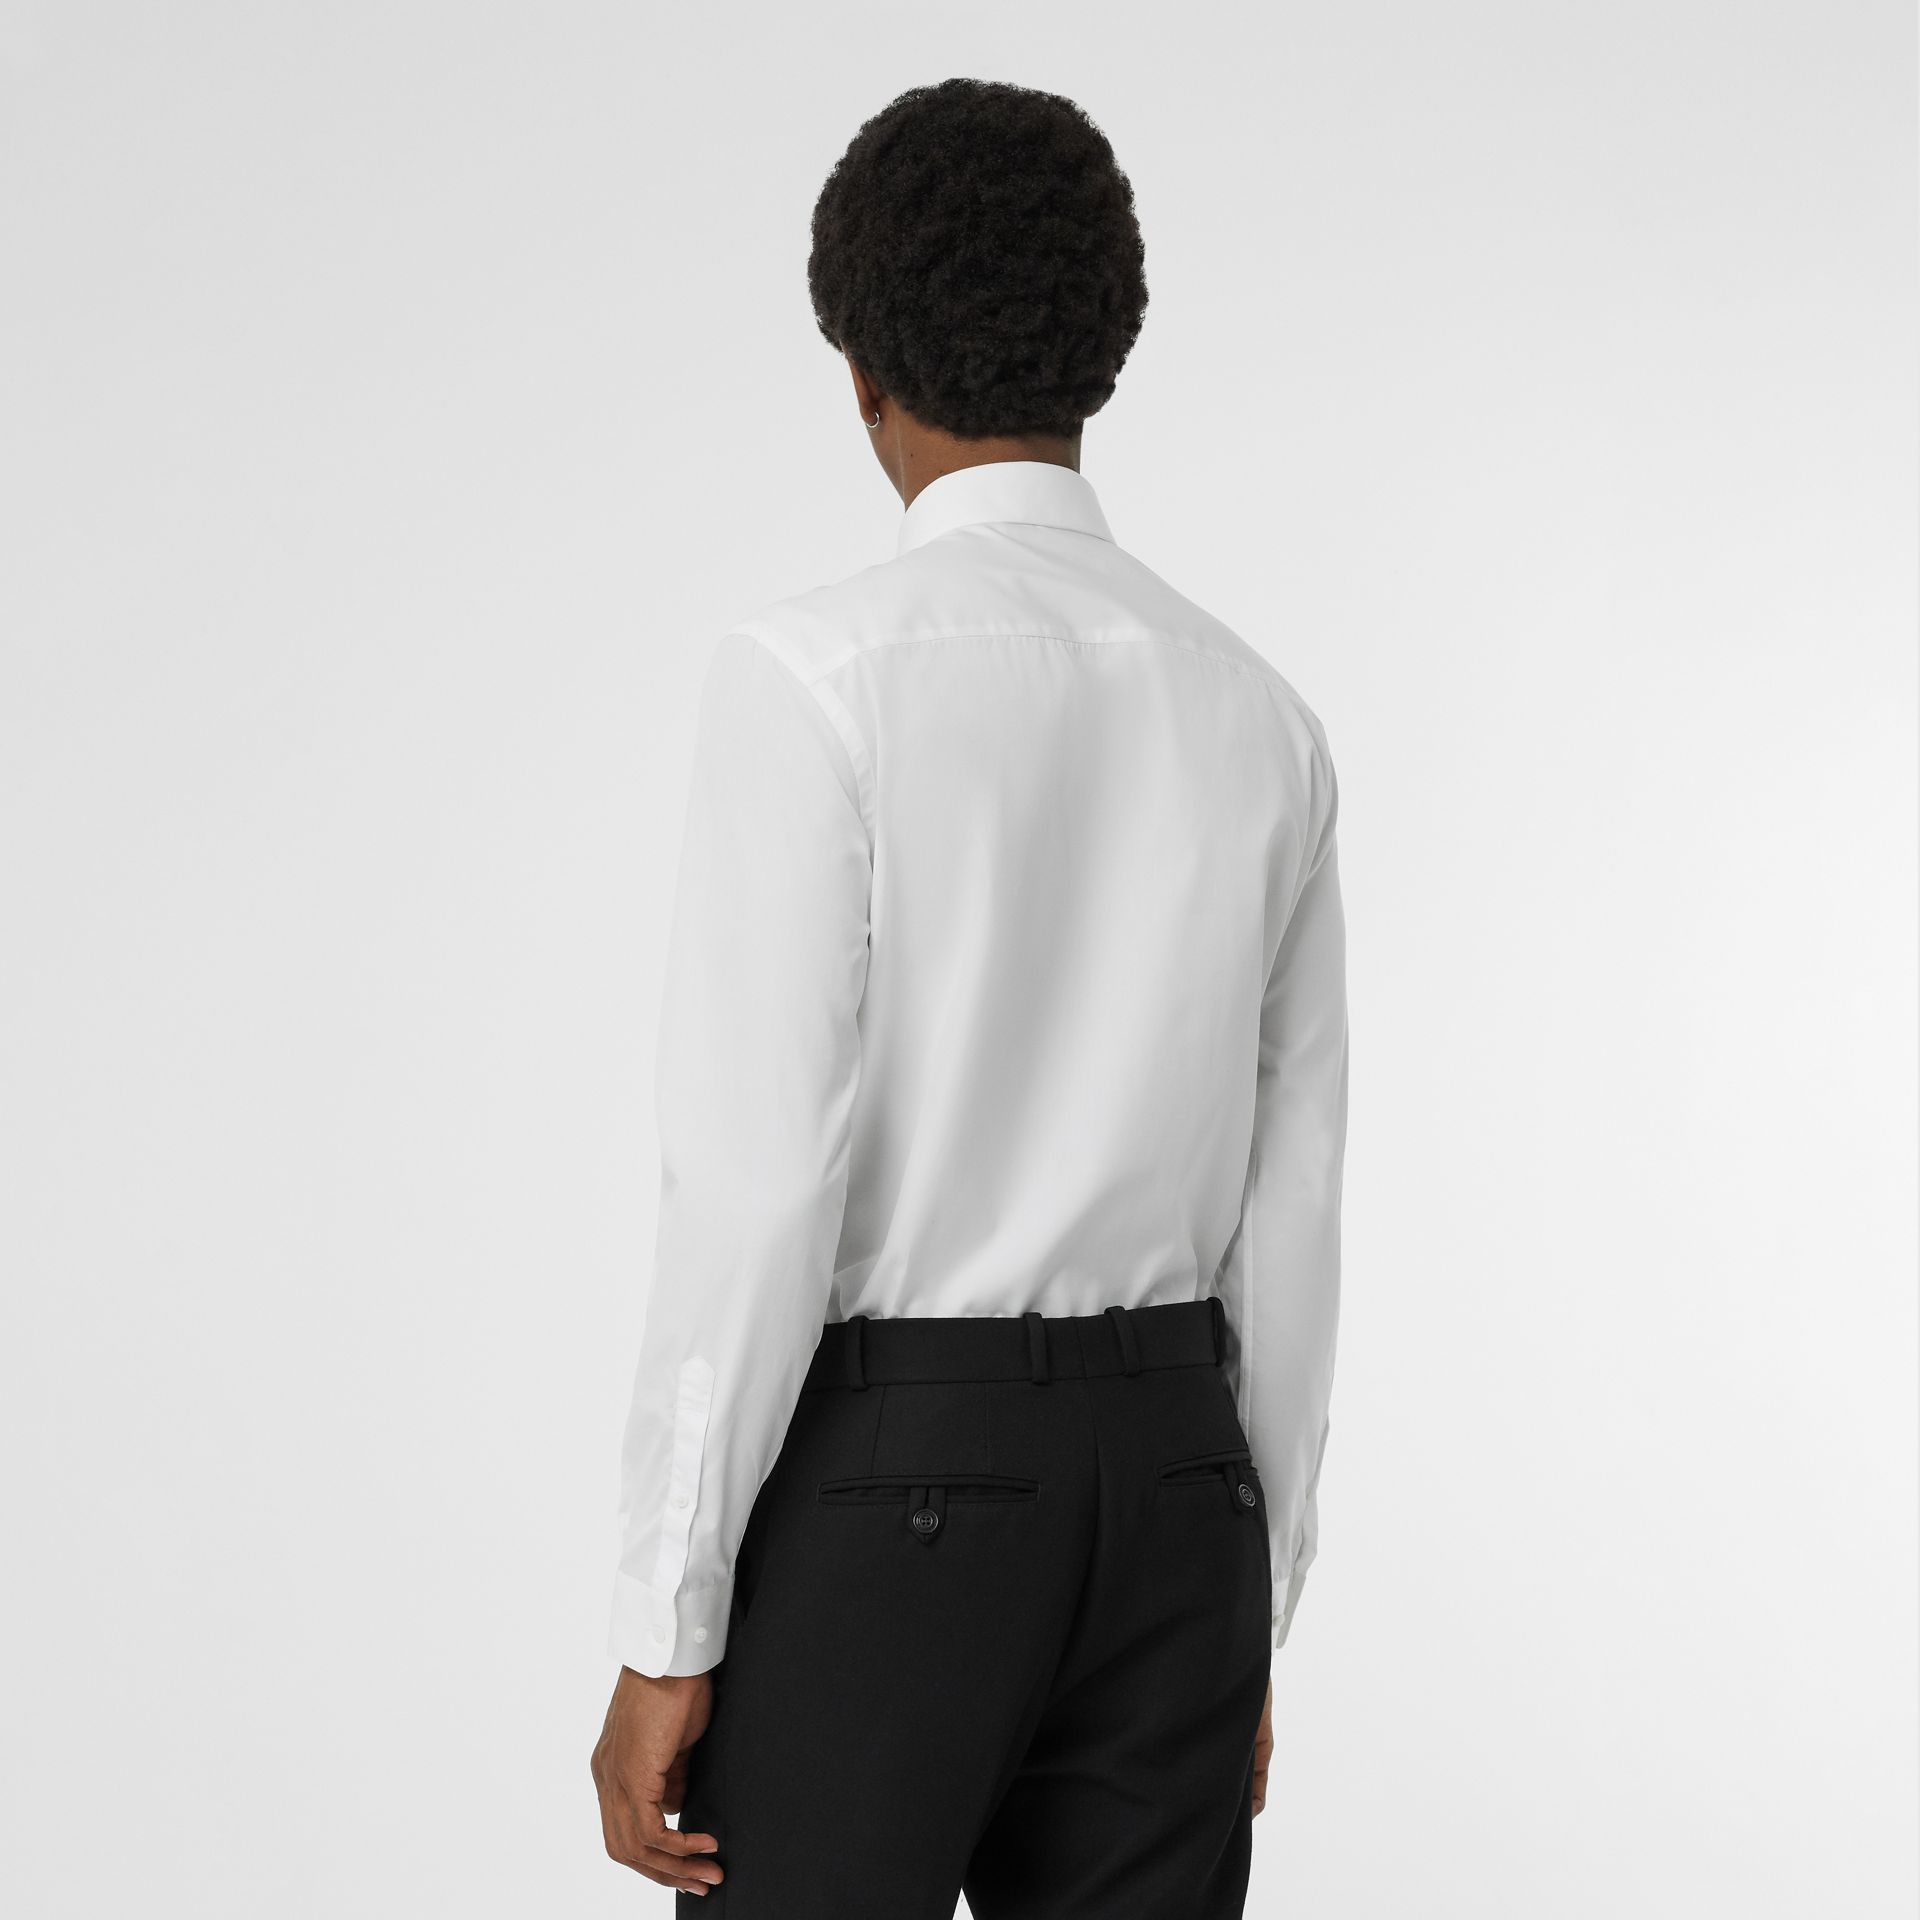 Slim Fit Bullion Floral Cotton Poplin Dress Shirt in White - Men | Burberry Canada - gallery image 2